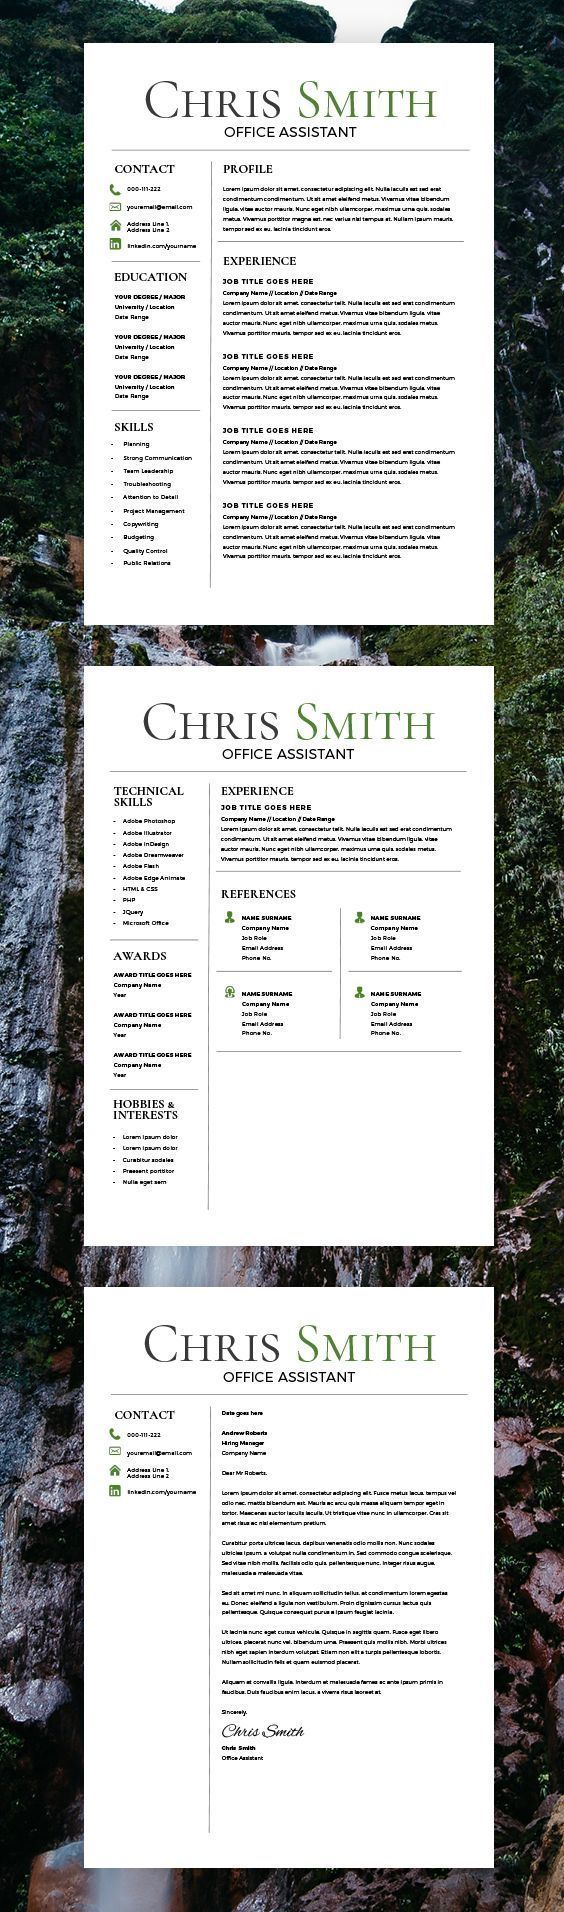 trending resume template cv template free cover letter ms word macpc - Free Professional Resume Template Word